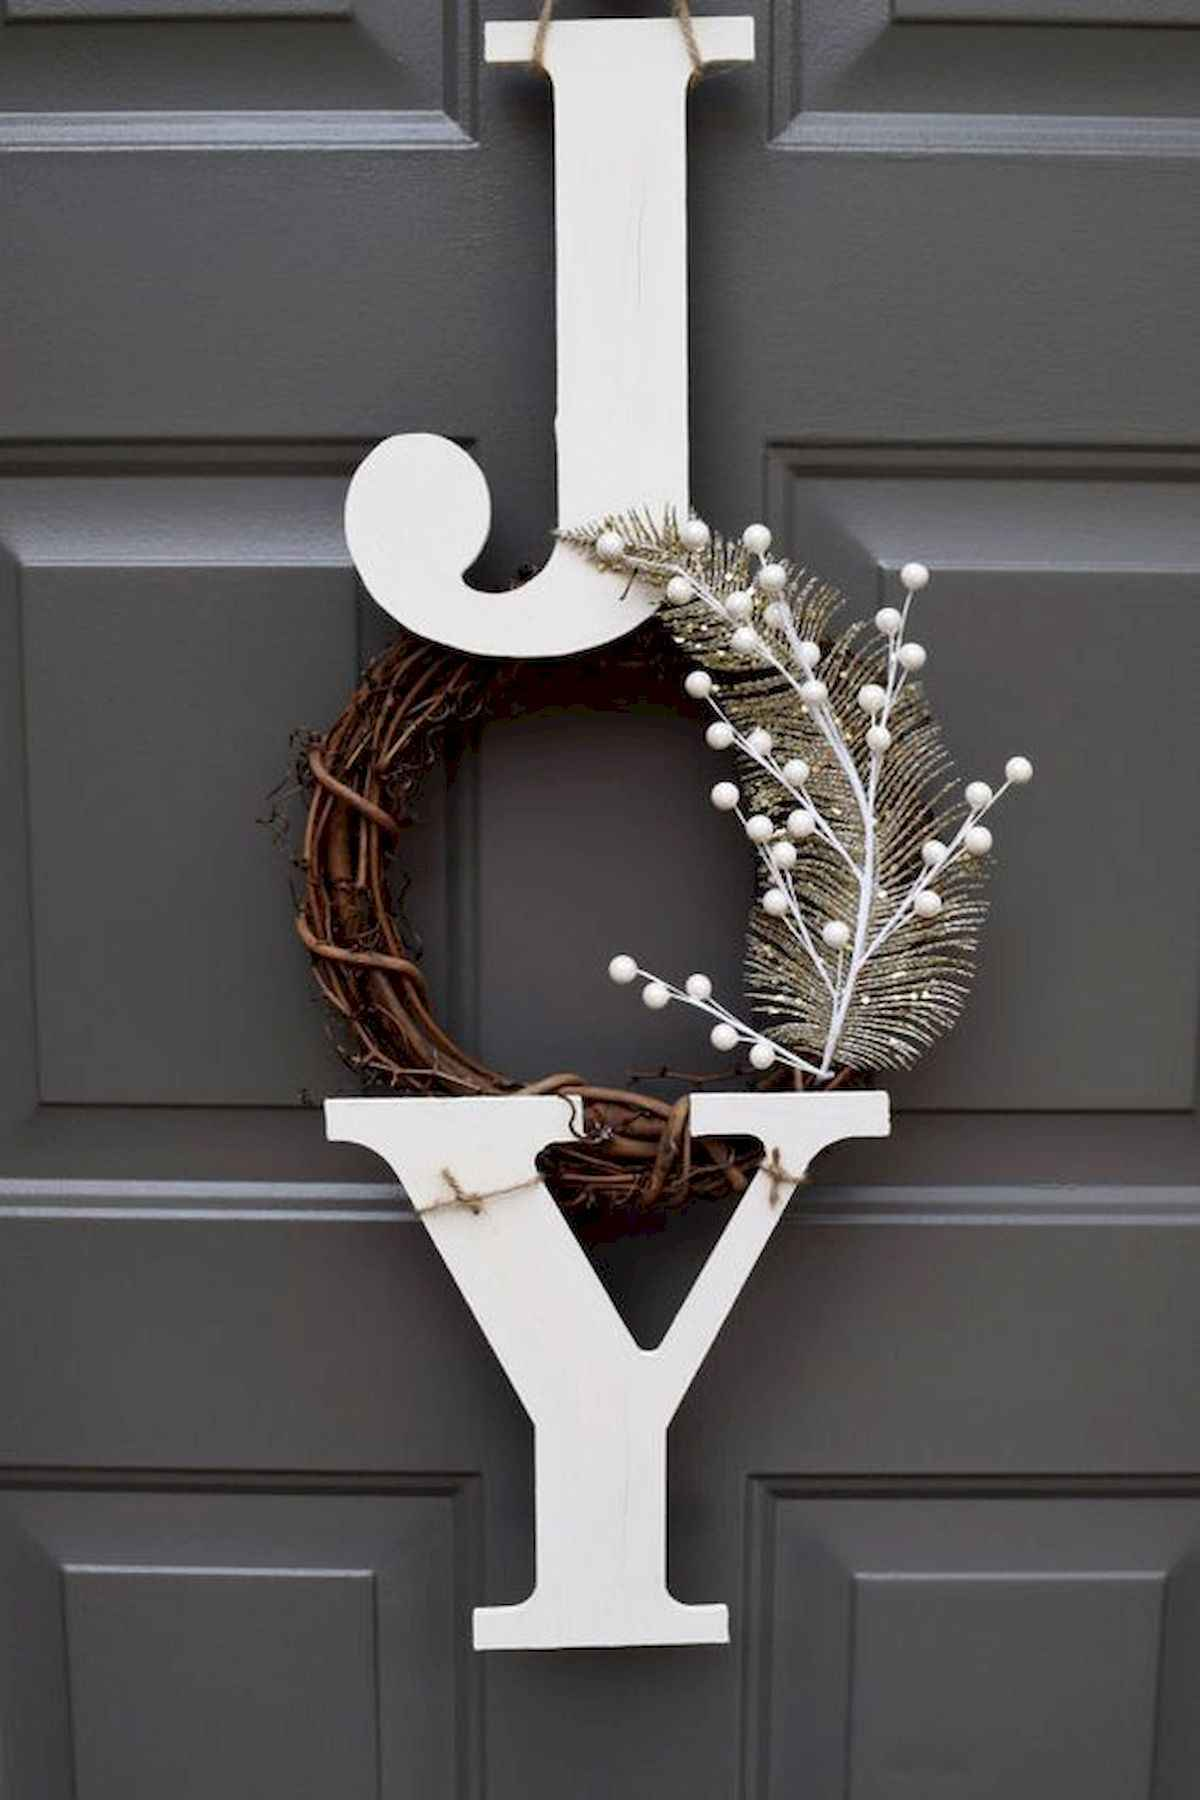 60 awesome wall art christmas ideas decorations (2)